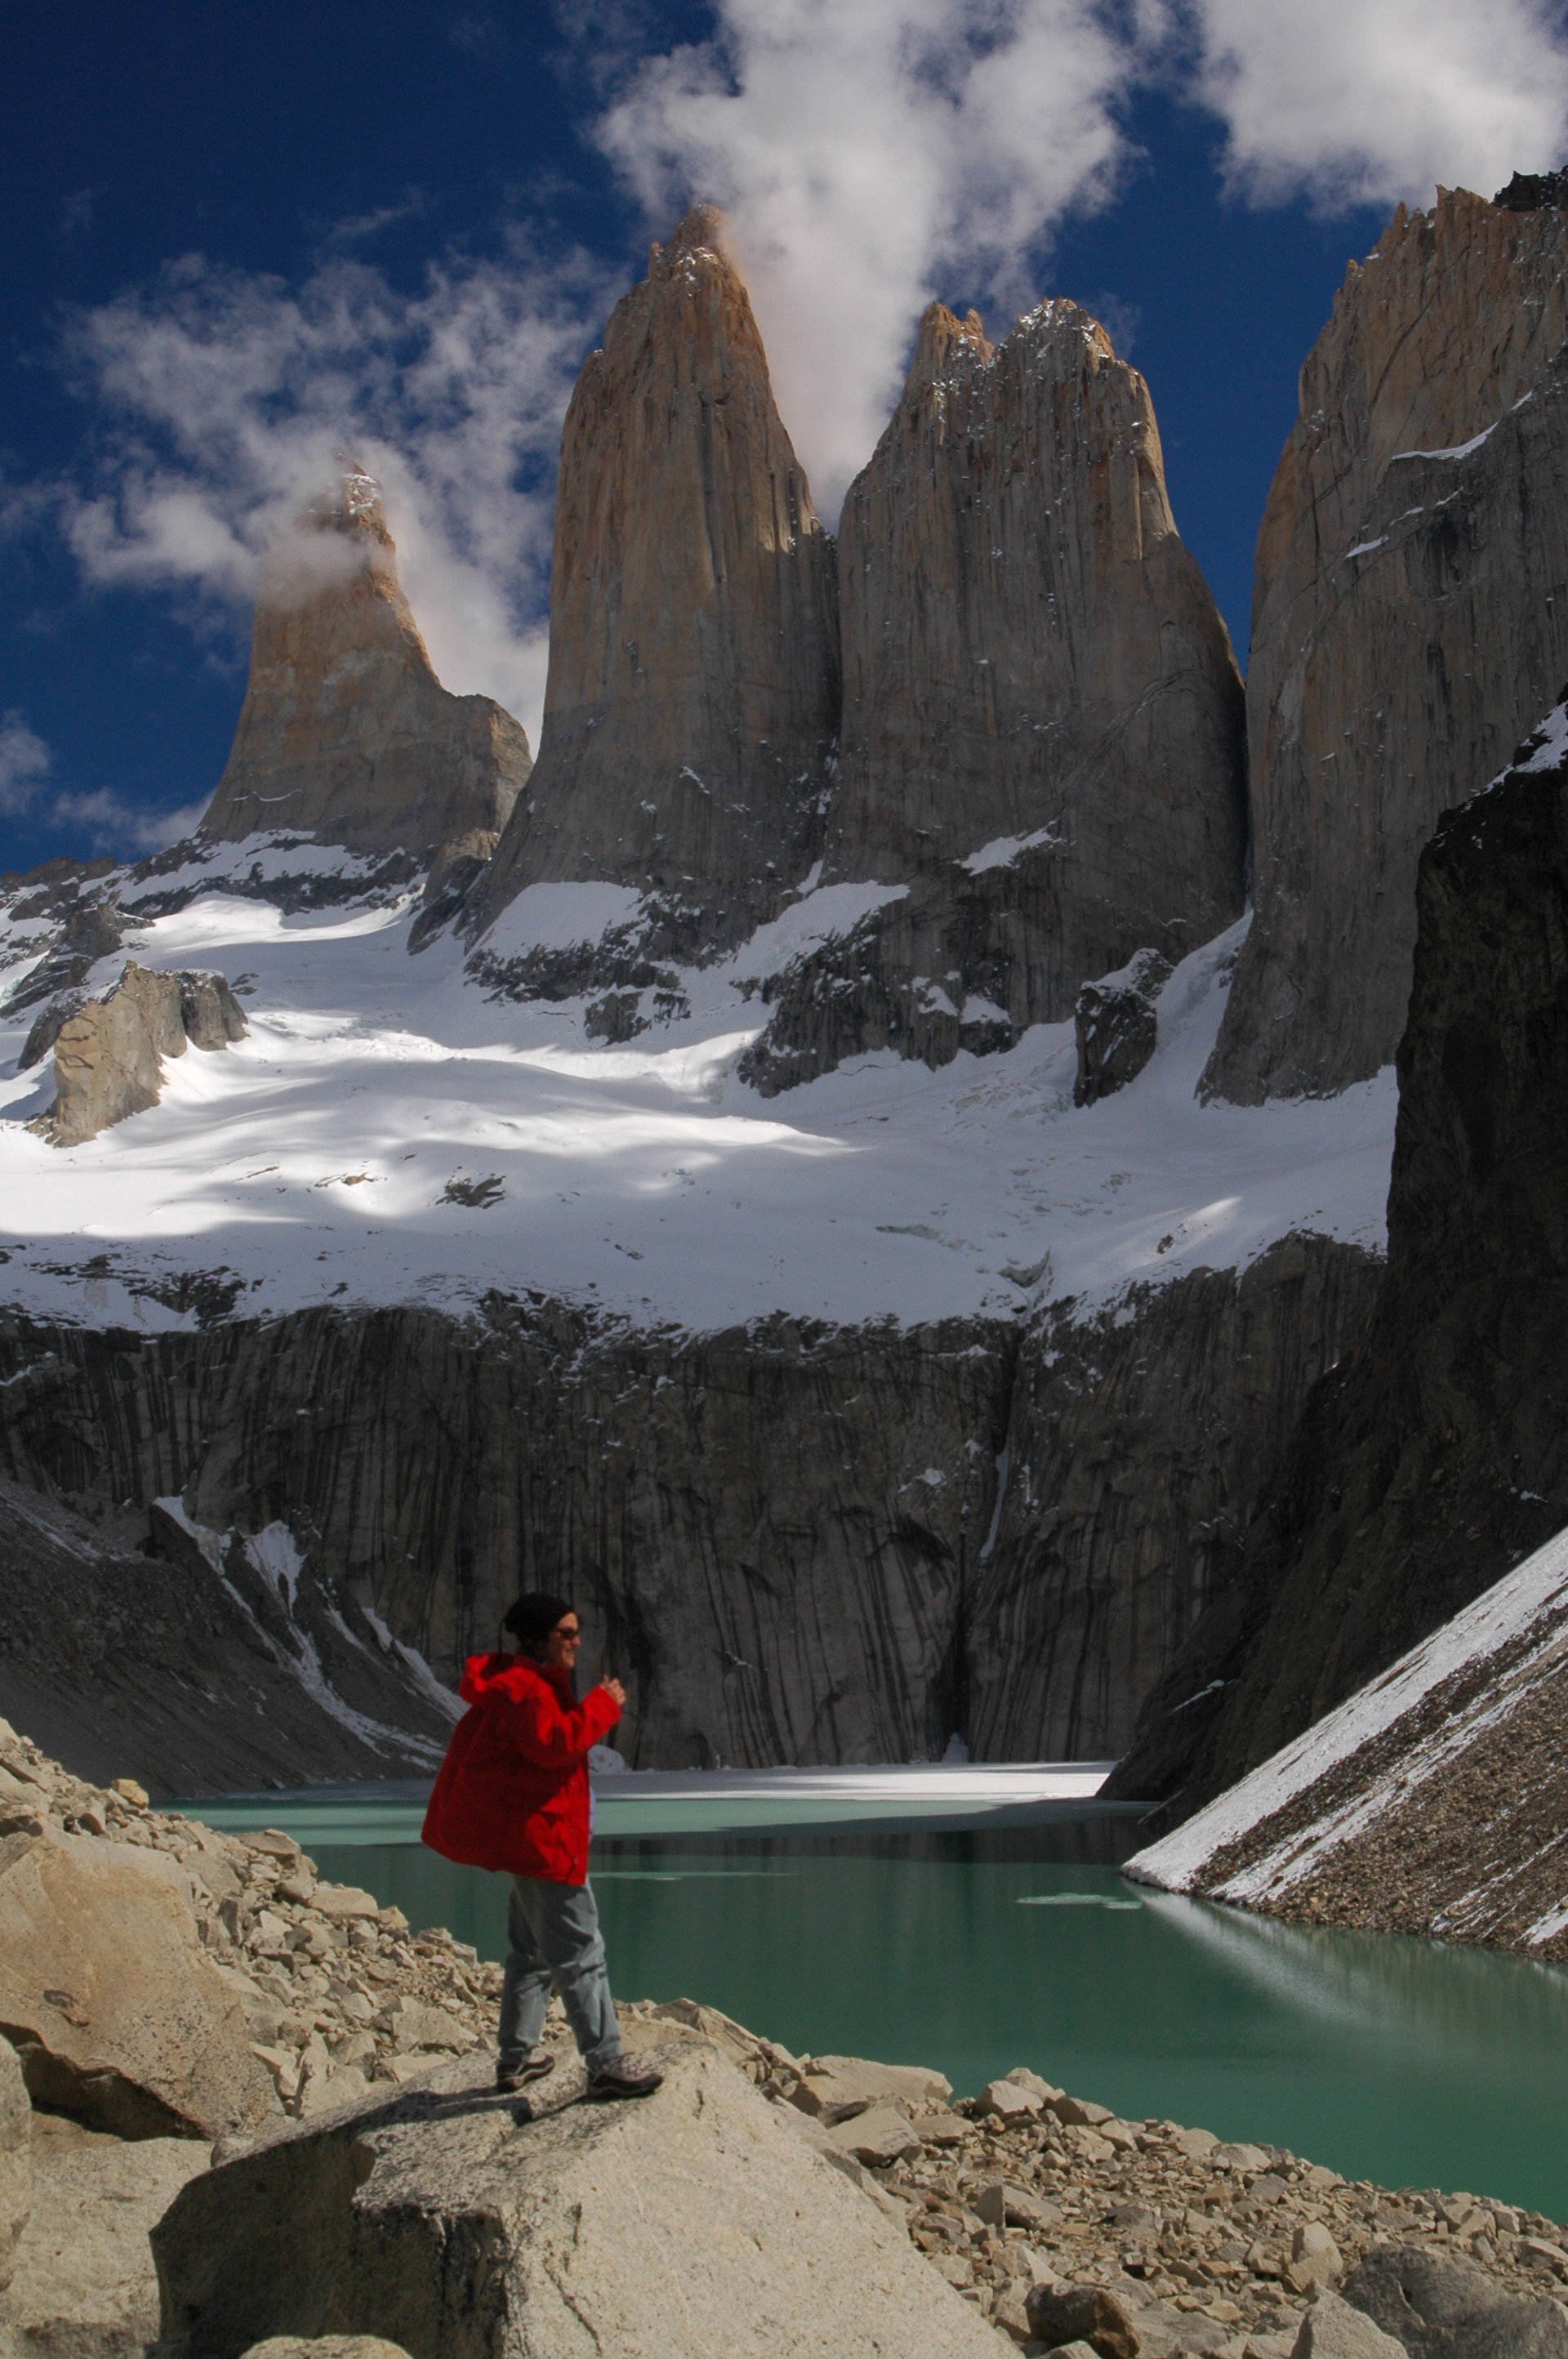 Patagonia South America >> Patagonia - legendary land of the giants - Senderos Naturales